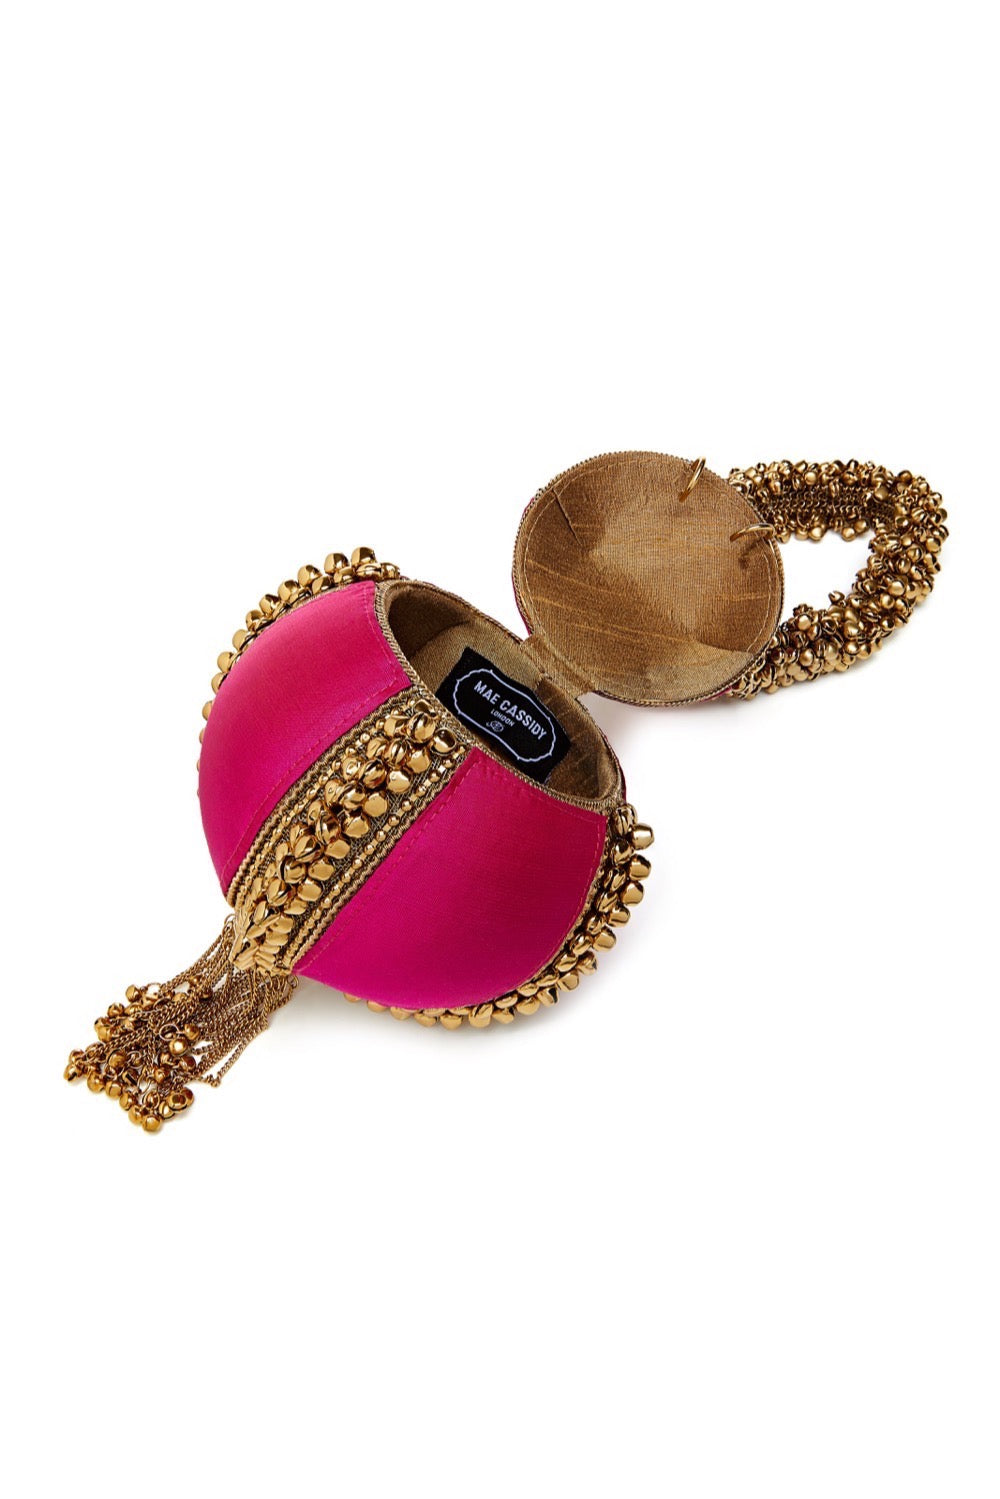 Mae Cassidy Babi Bracelet Power Pink Antique Gold Clutch Bag.